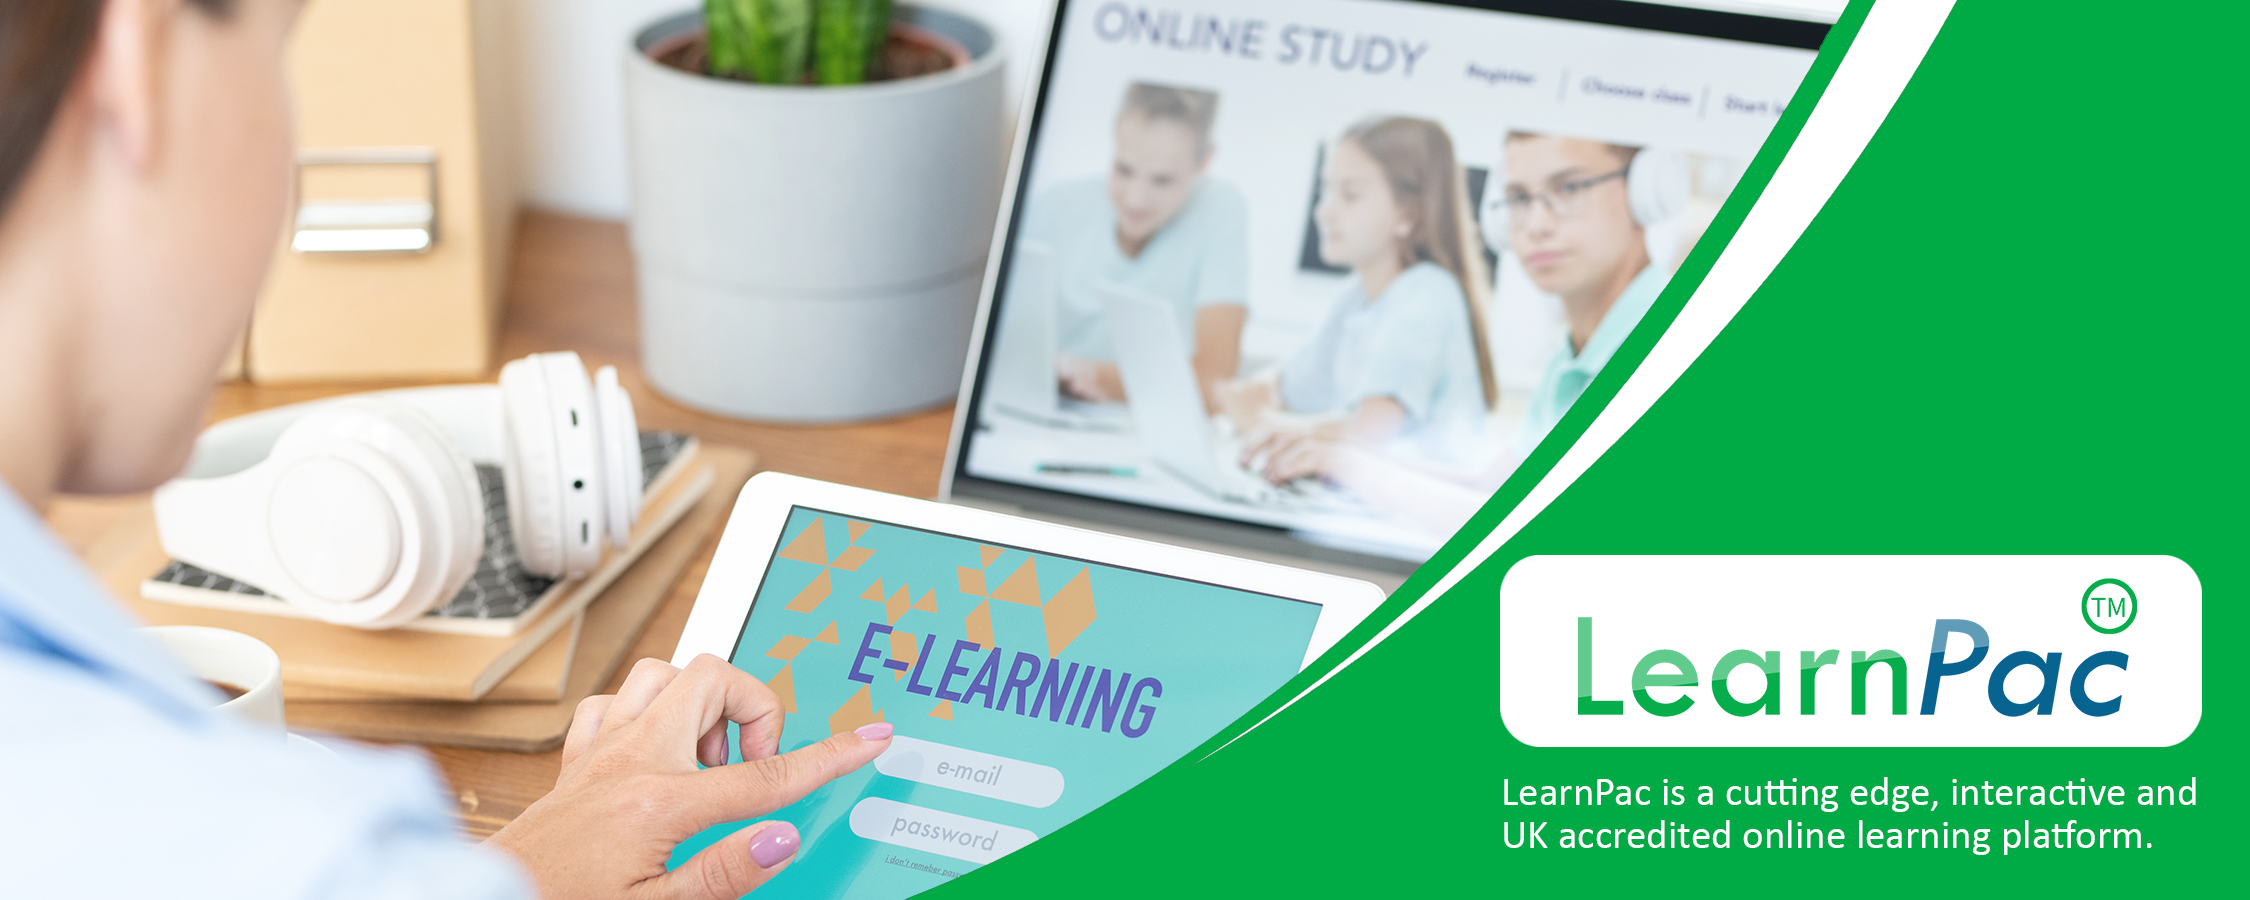 Care Certificate Standard 9 - E-Learning Courses - LearnPac Systems UK -